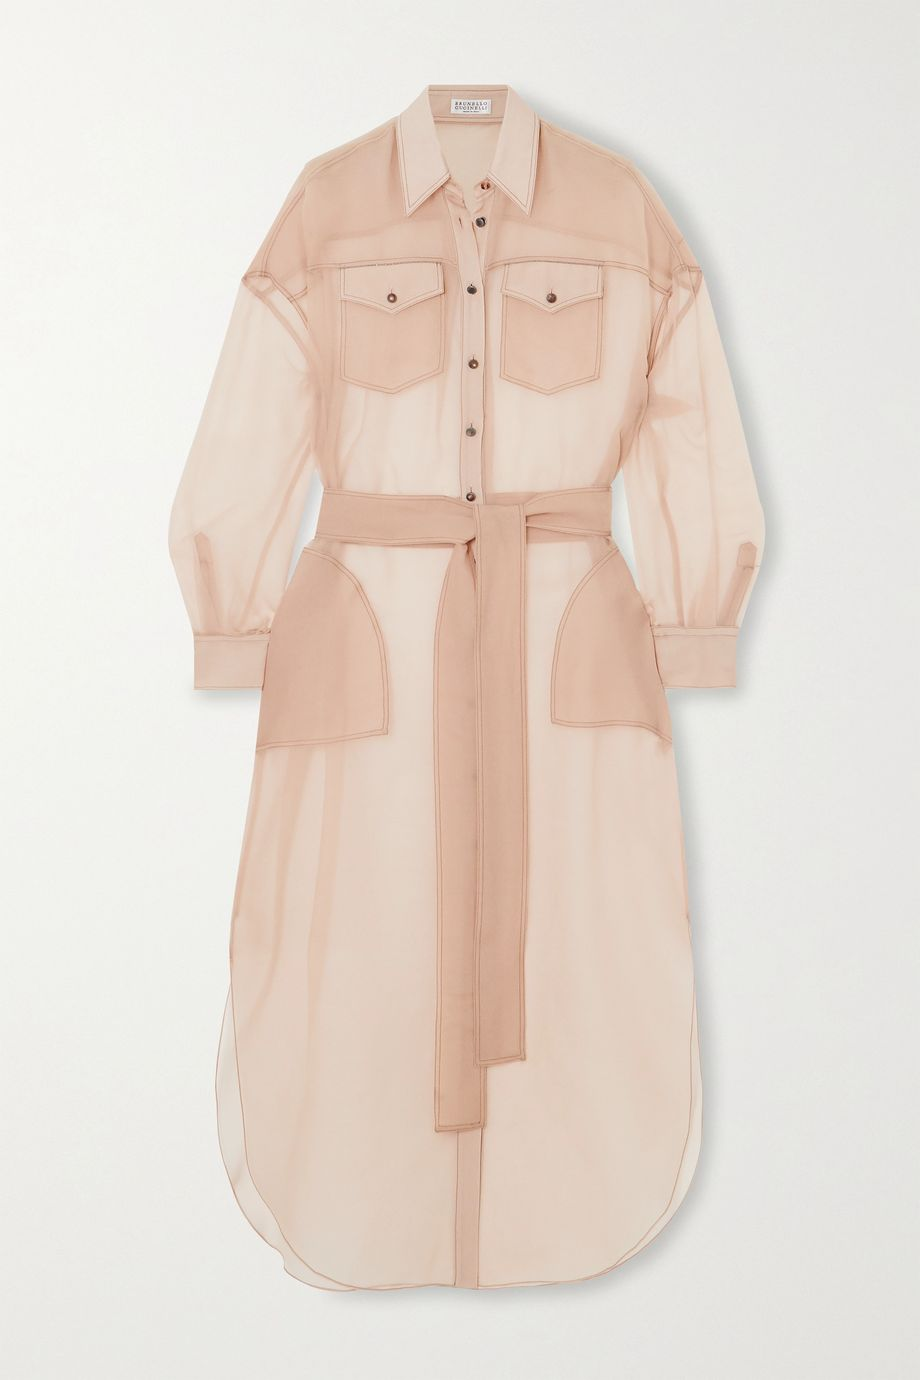 Brunello Cucinelli Bead-embellished silk-chiffon shirt dress